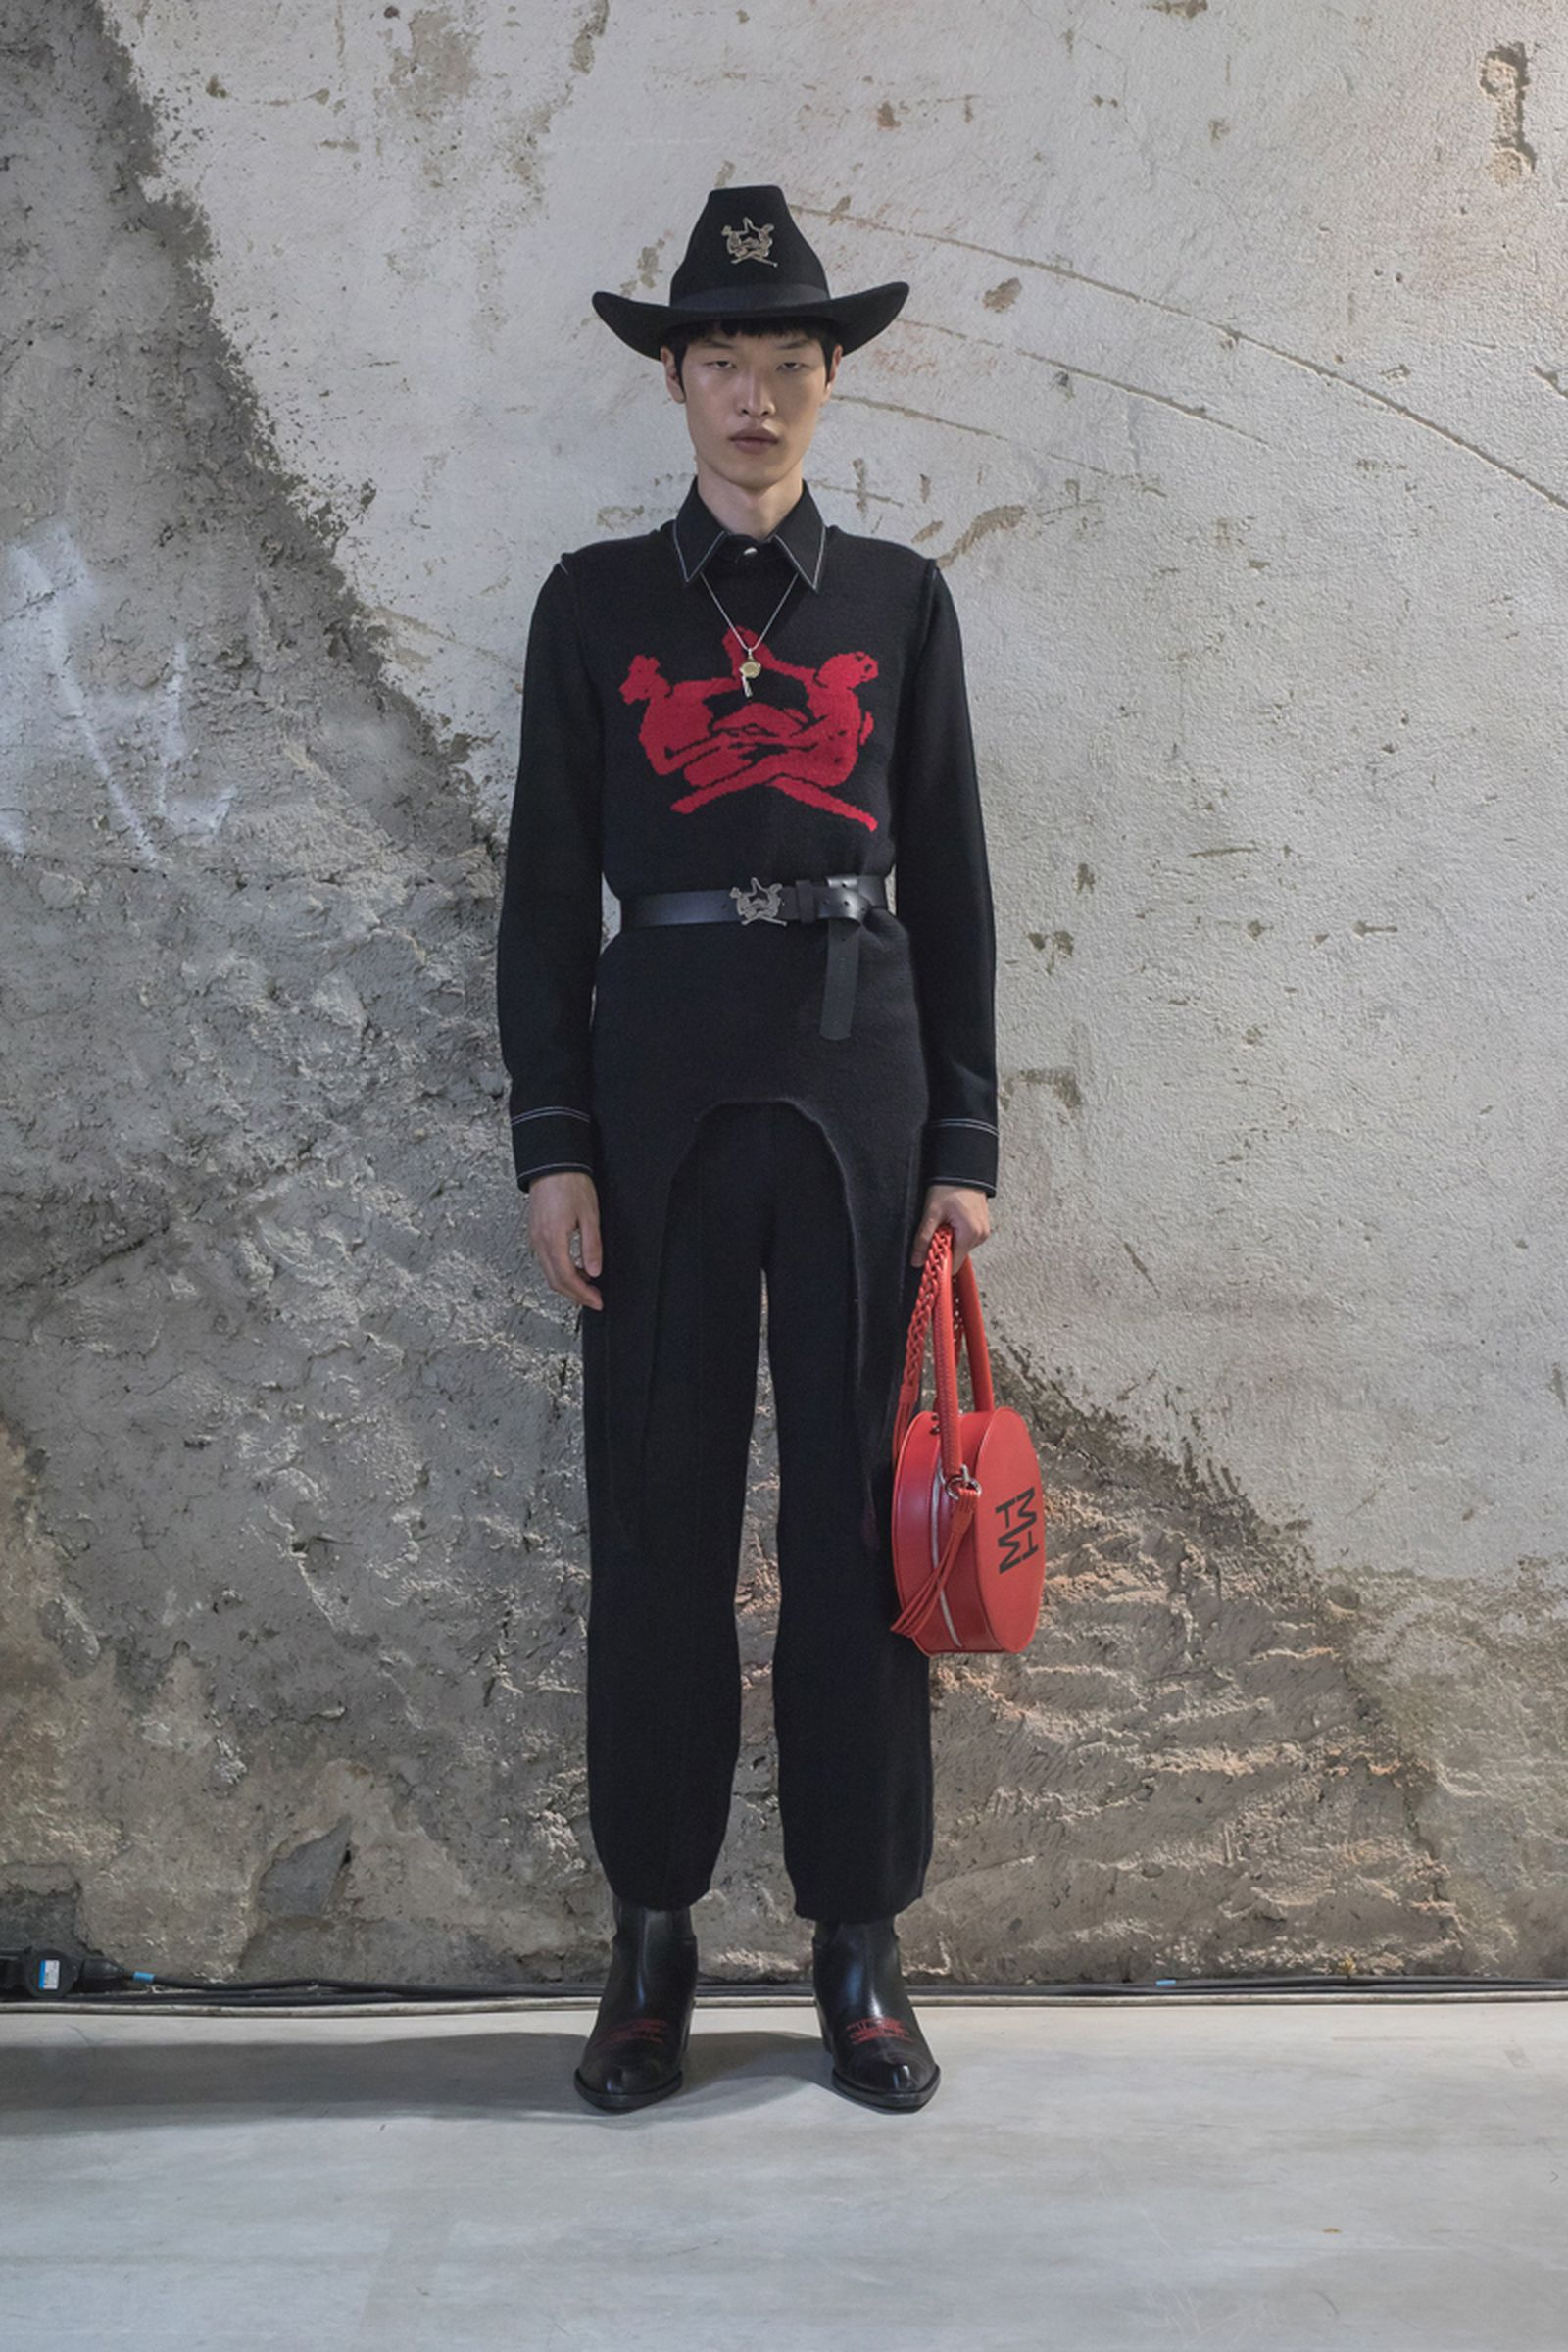 thebe-magugus-menswear-debut-at-pitti-is-everything-we-hoped-it-would-be-7